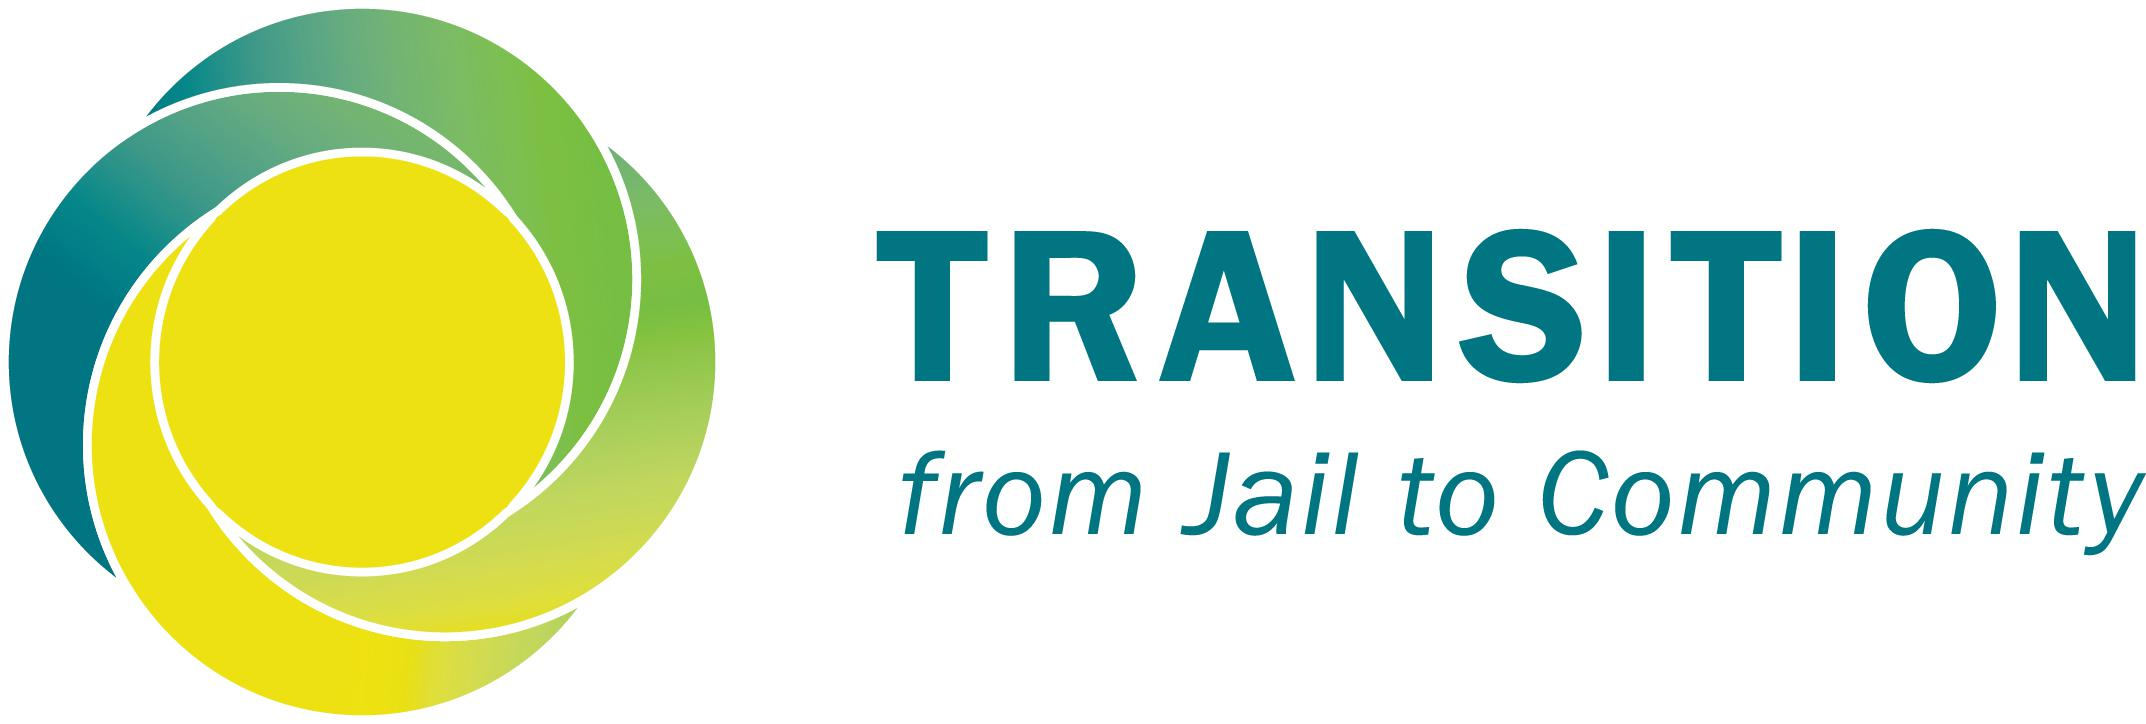 Transition from Jail to Community Logo